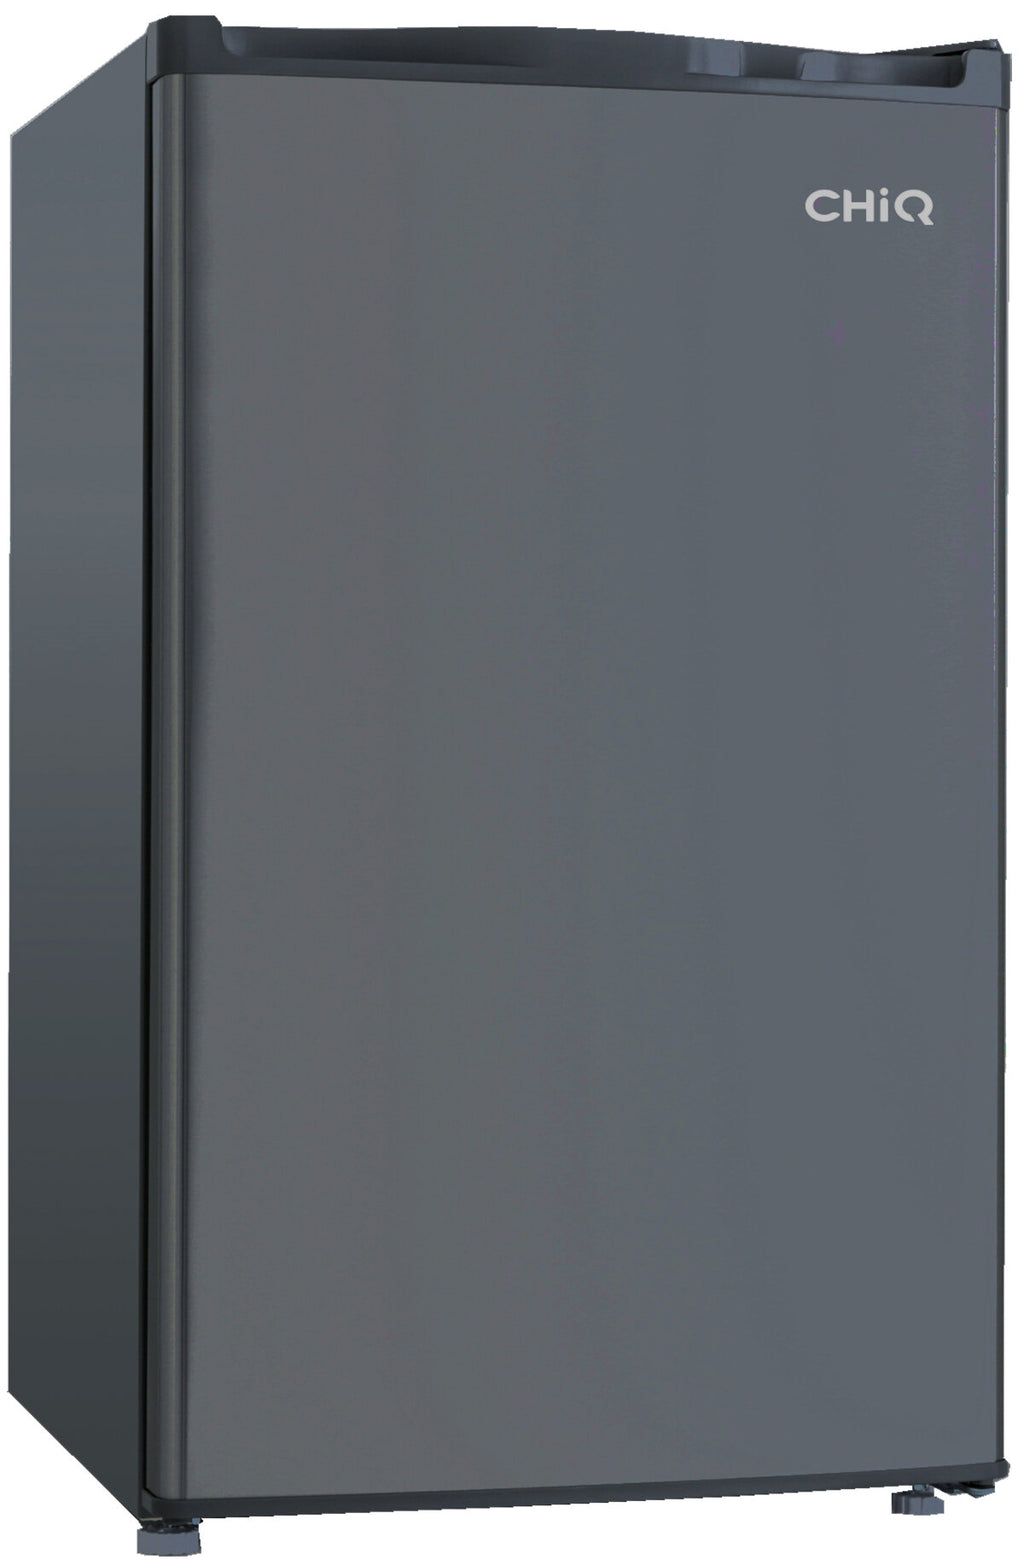 Chiq 126 L Bar Fridge (Brand New) - Brisbane Home Appliances